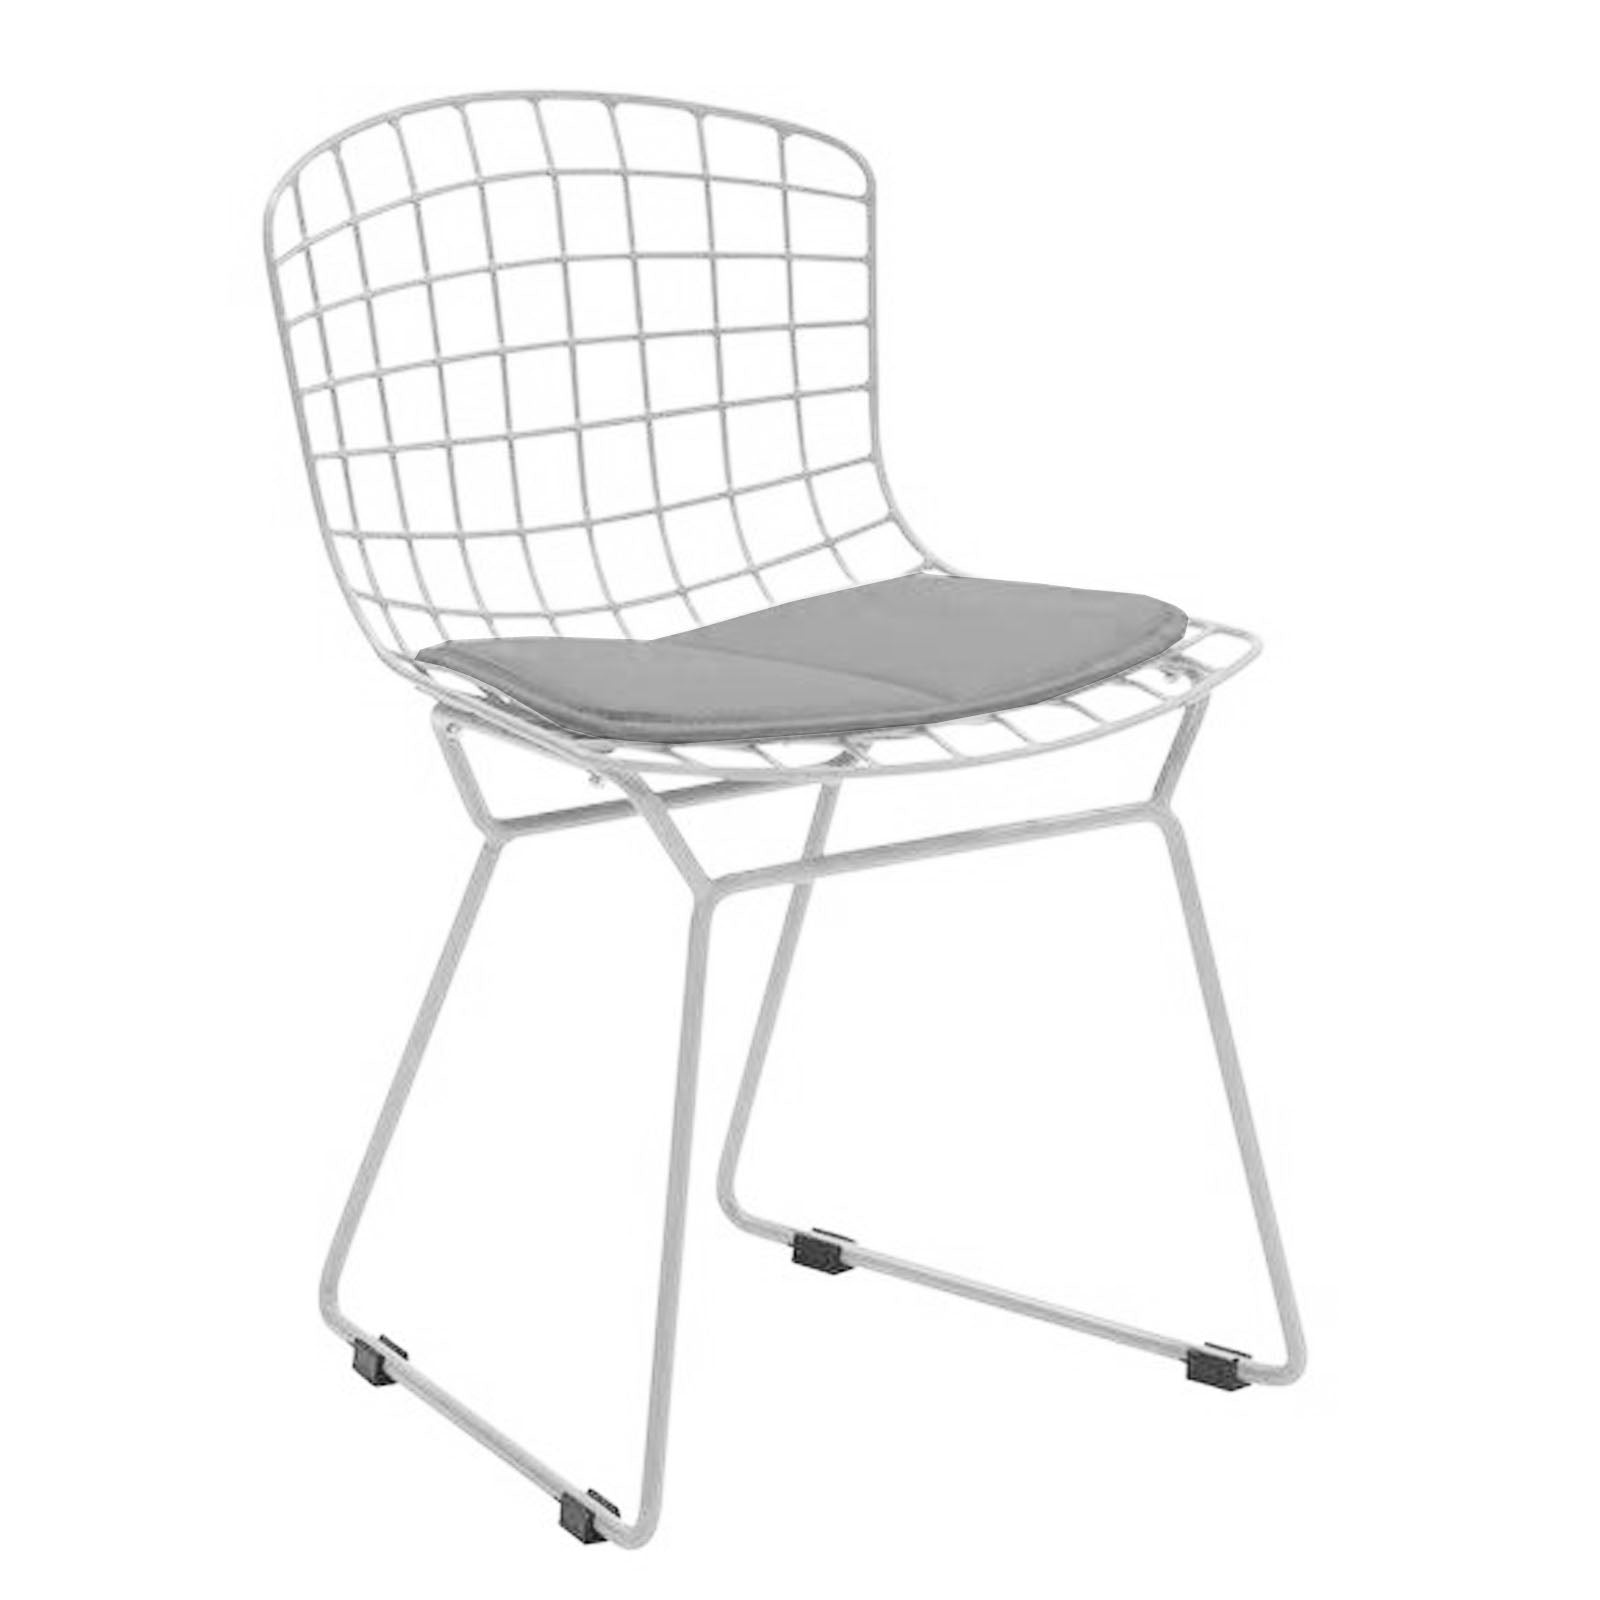 Kids wire Chair MC-024A-W -  كرسي سلك للأطفال - Shop Online Furniture and Home Decor Store in Dubai, UAE at ebarza